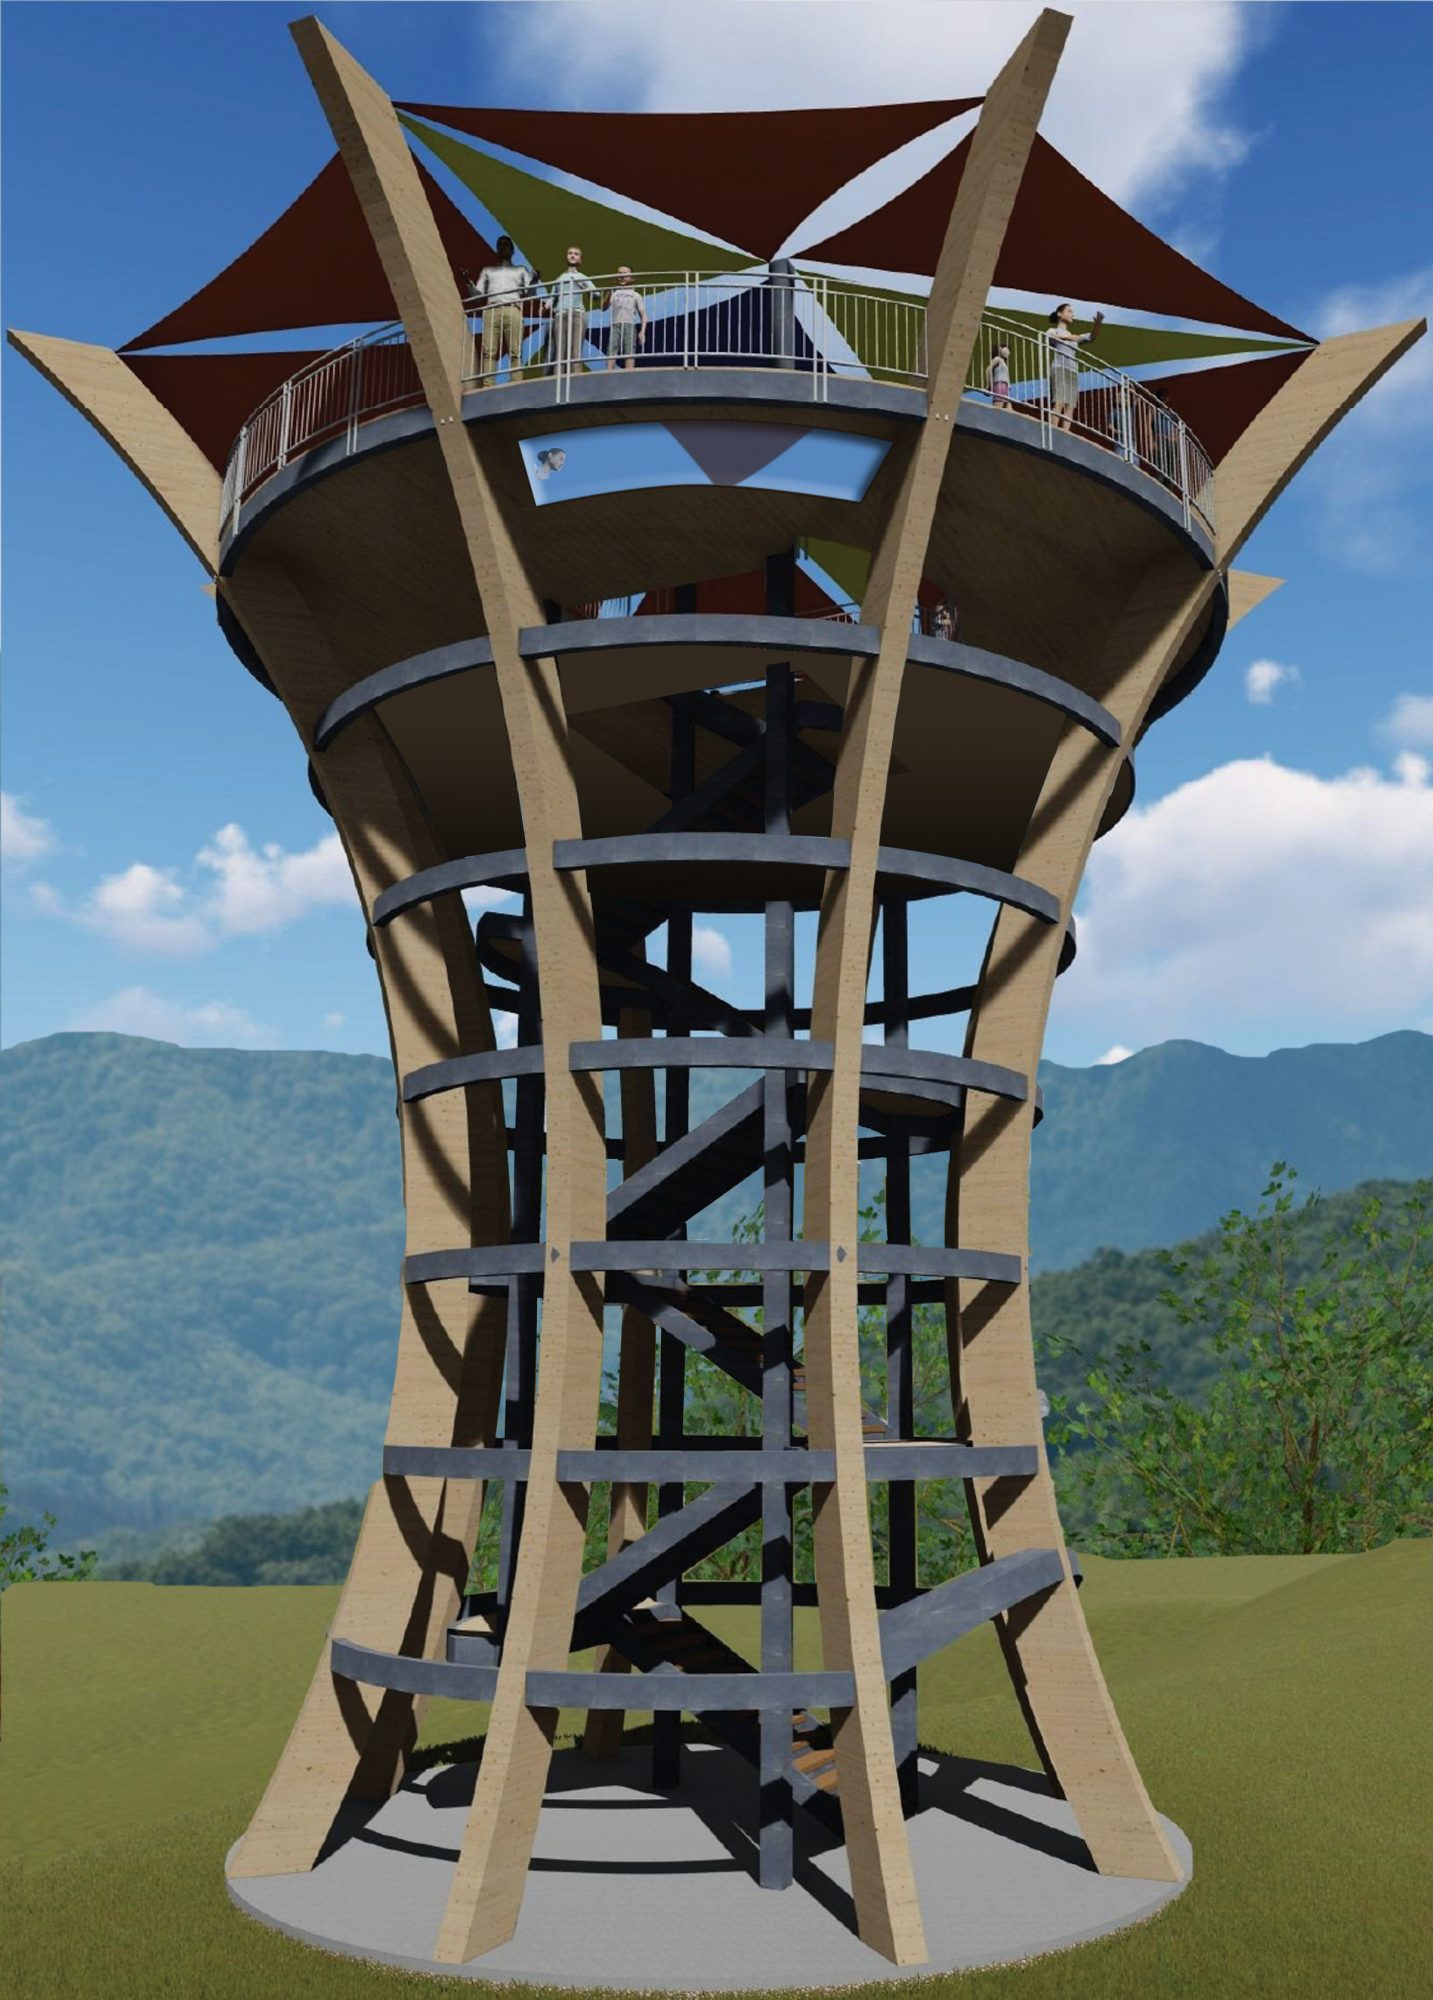 Observation Tower at Anakeesta - 2020 expansion